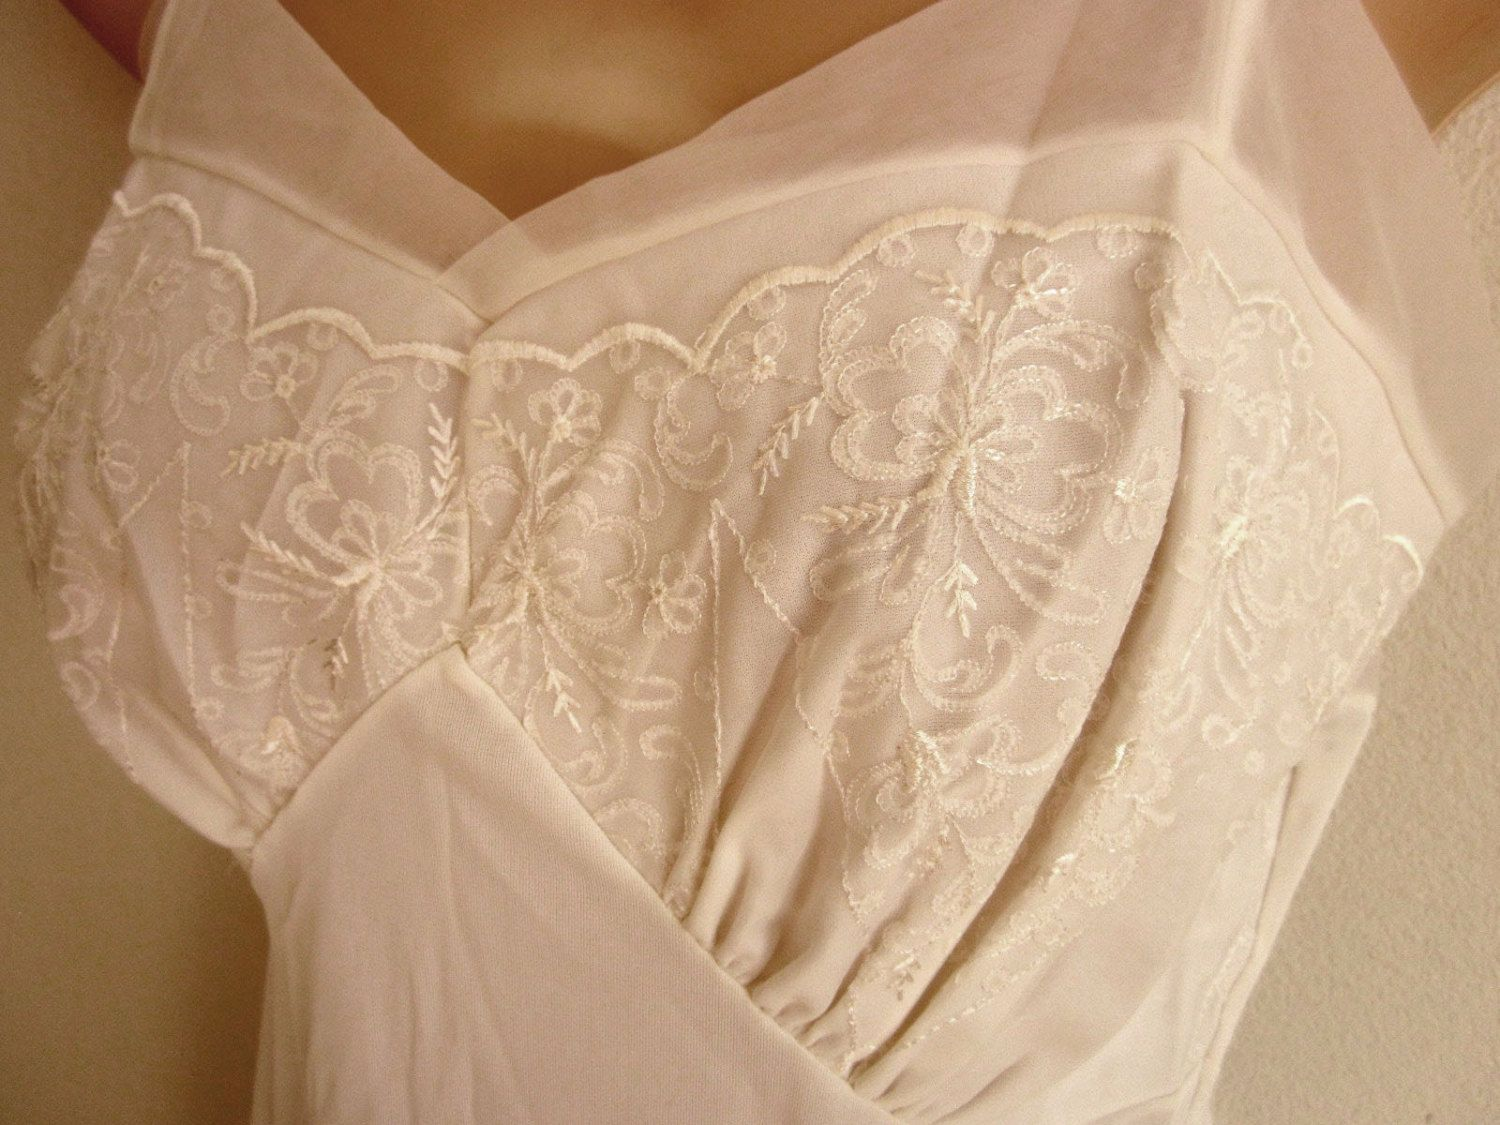 Vintage full slip white nylon shadow lace bodice sexy lingerie nightgown 36 bust by divasvintage on Etsy